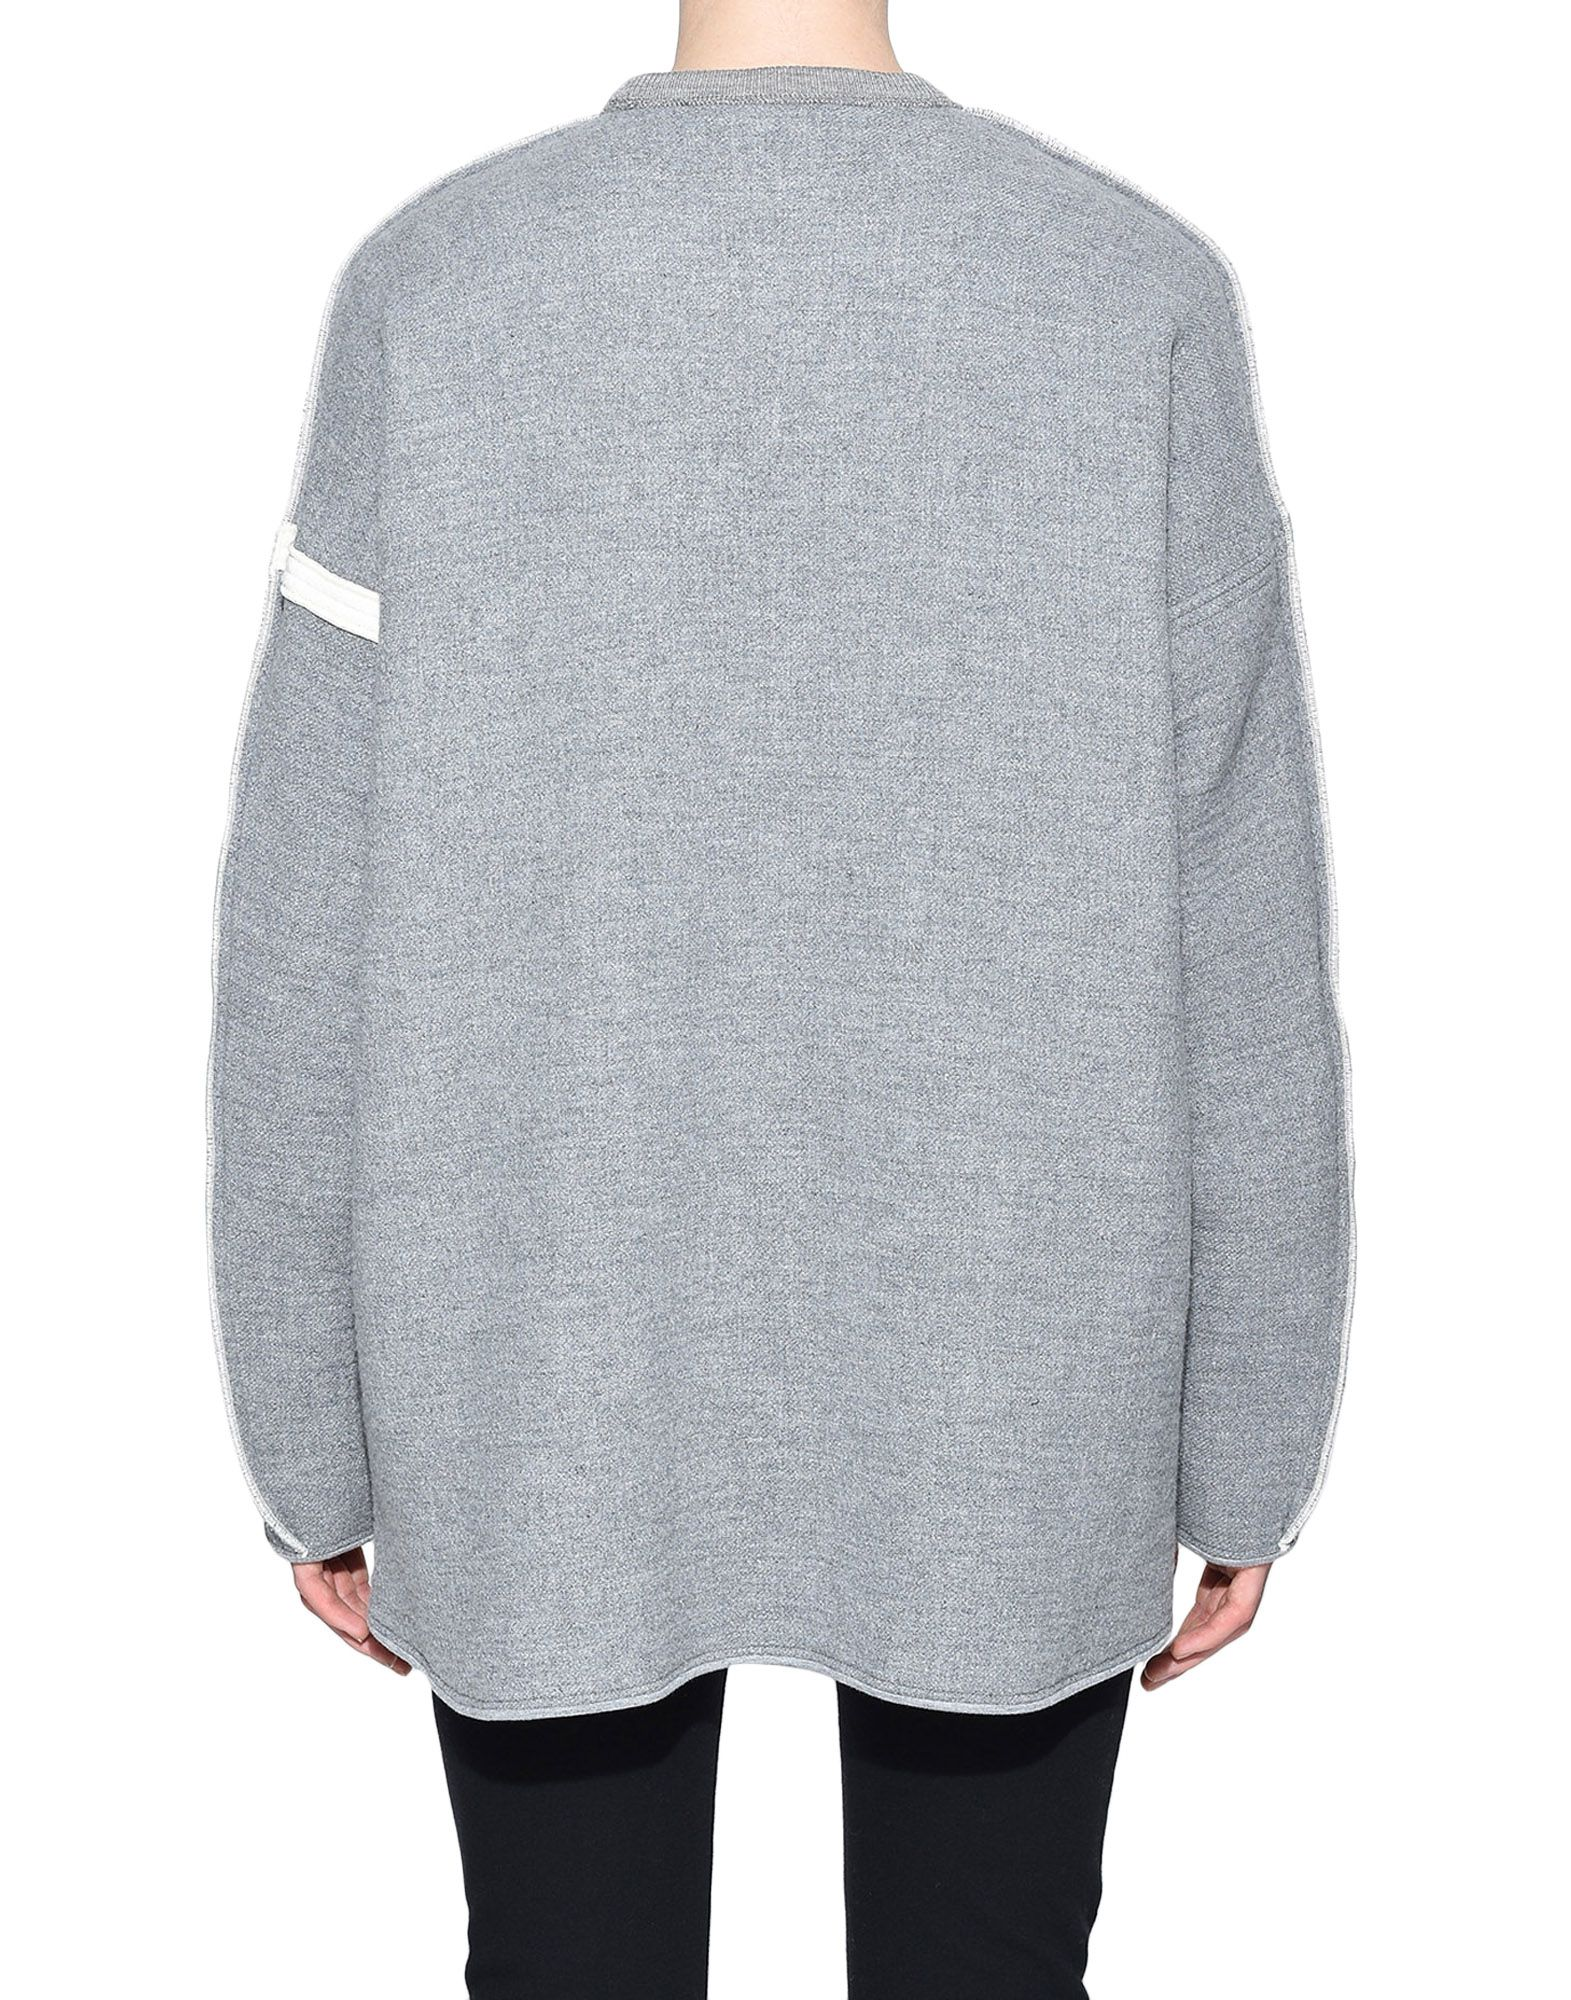 Y-3 Y-3 Oversize Spacer Wool Sweater スウェット レディース d